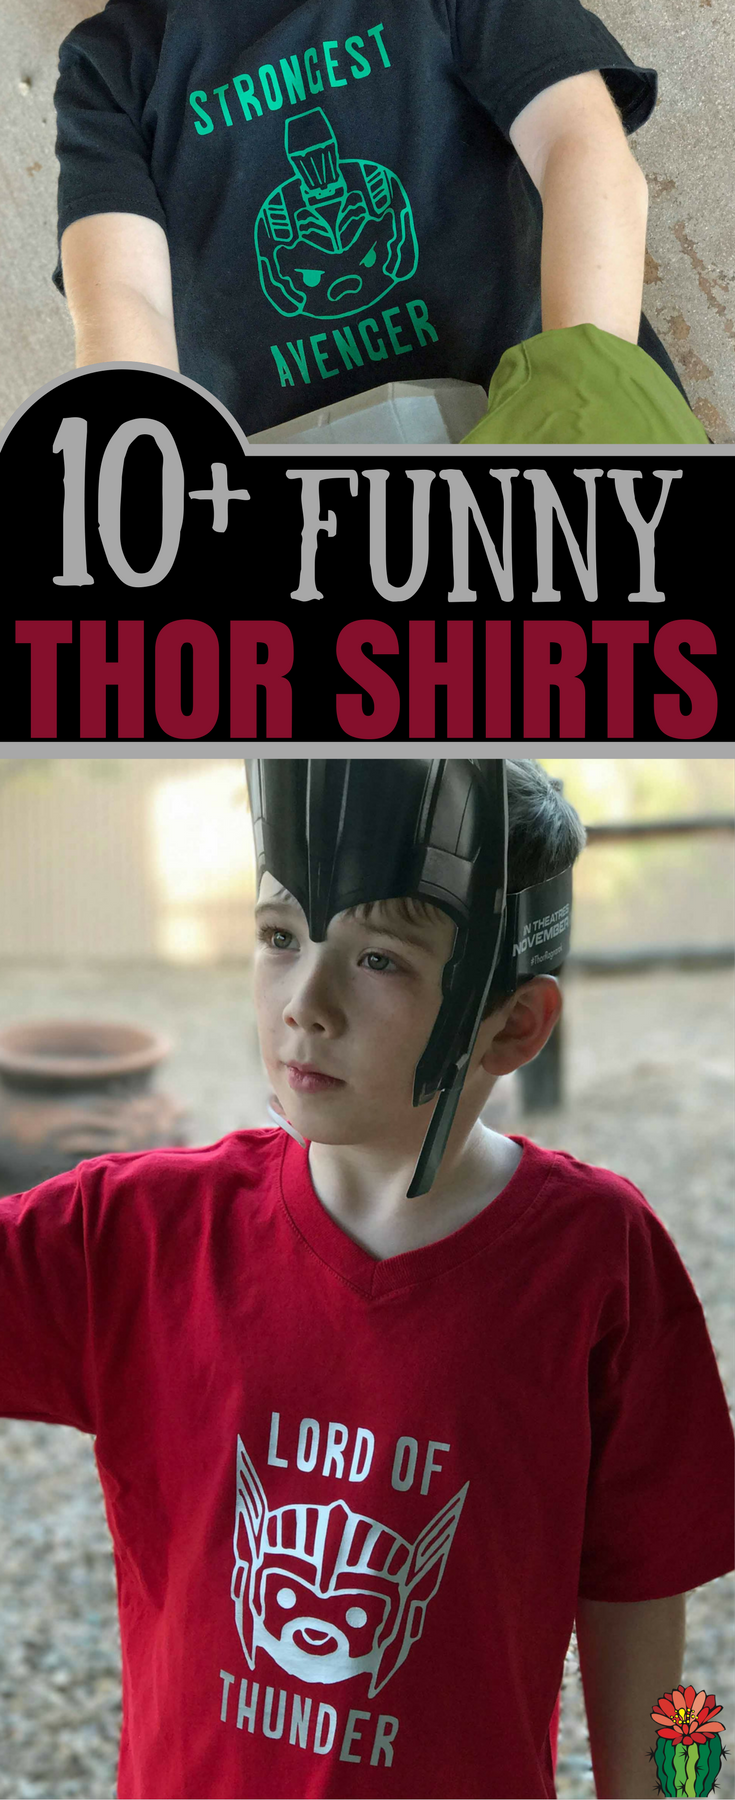 Over 10 Funny Thor Shirt ideas